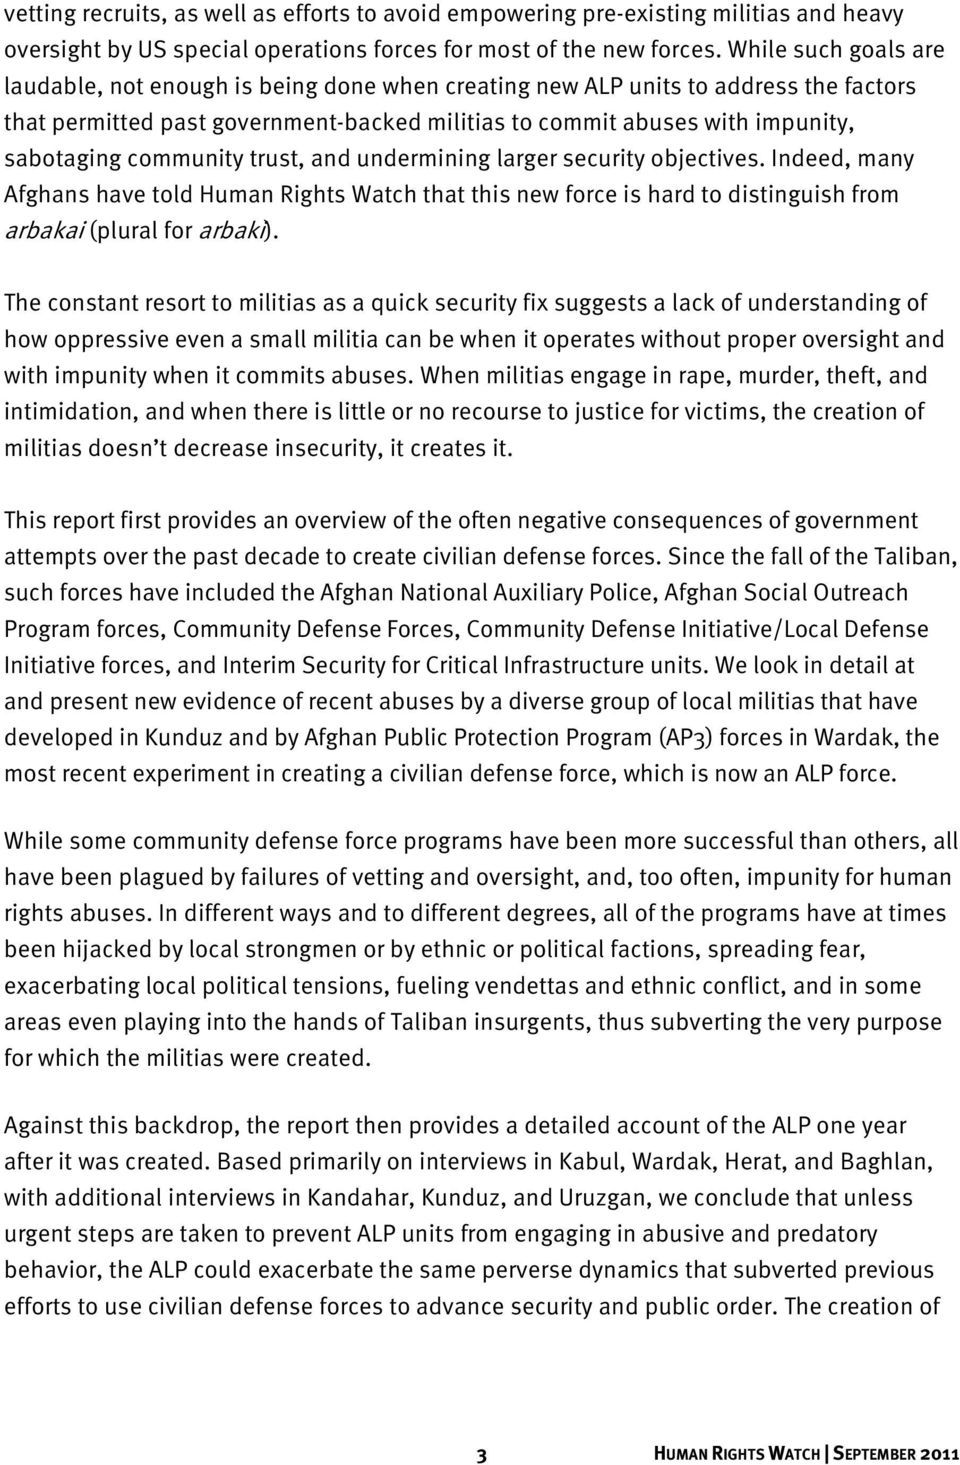 community trust, and undermining larger security objectives. Indeed, many Afghans have told Human Rights Watch that this new force is hard to distinguish from arbakai (plural for arbaki).